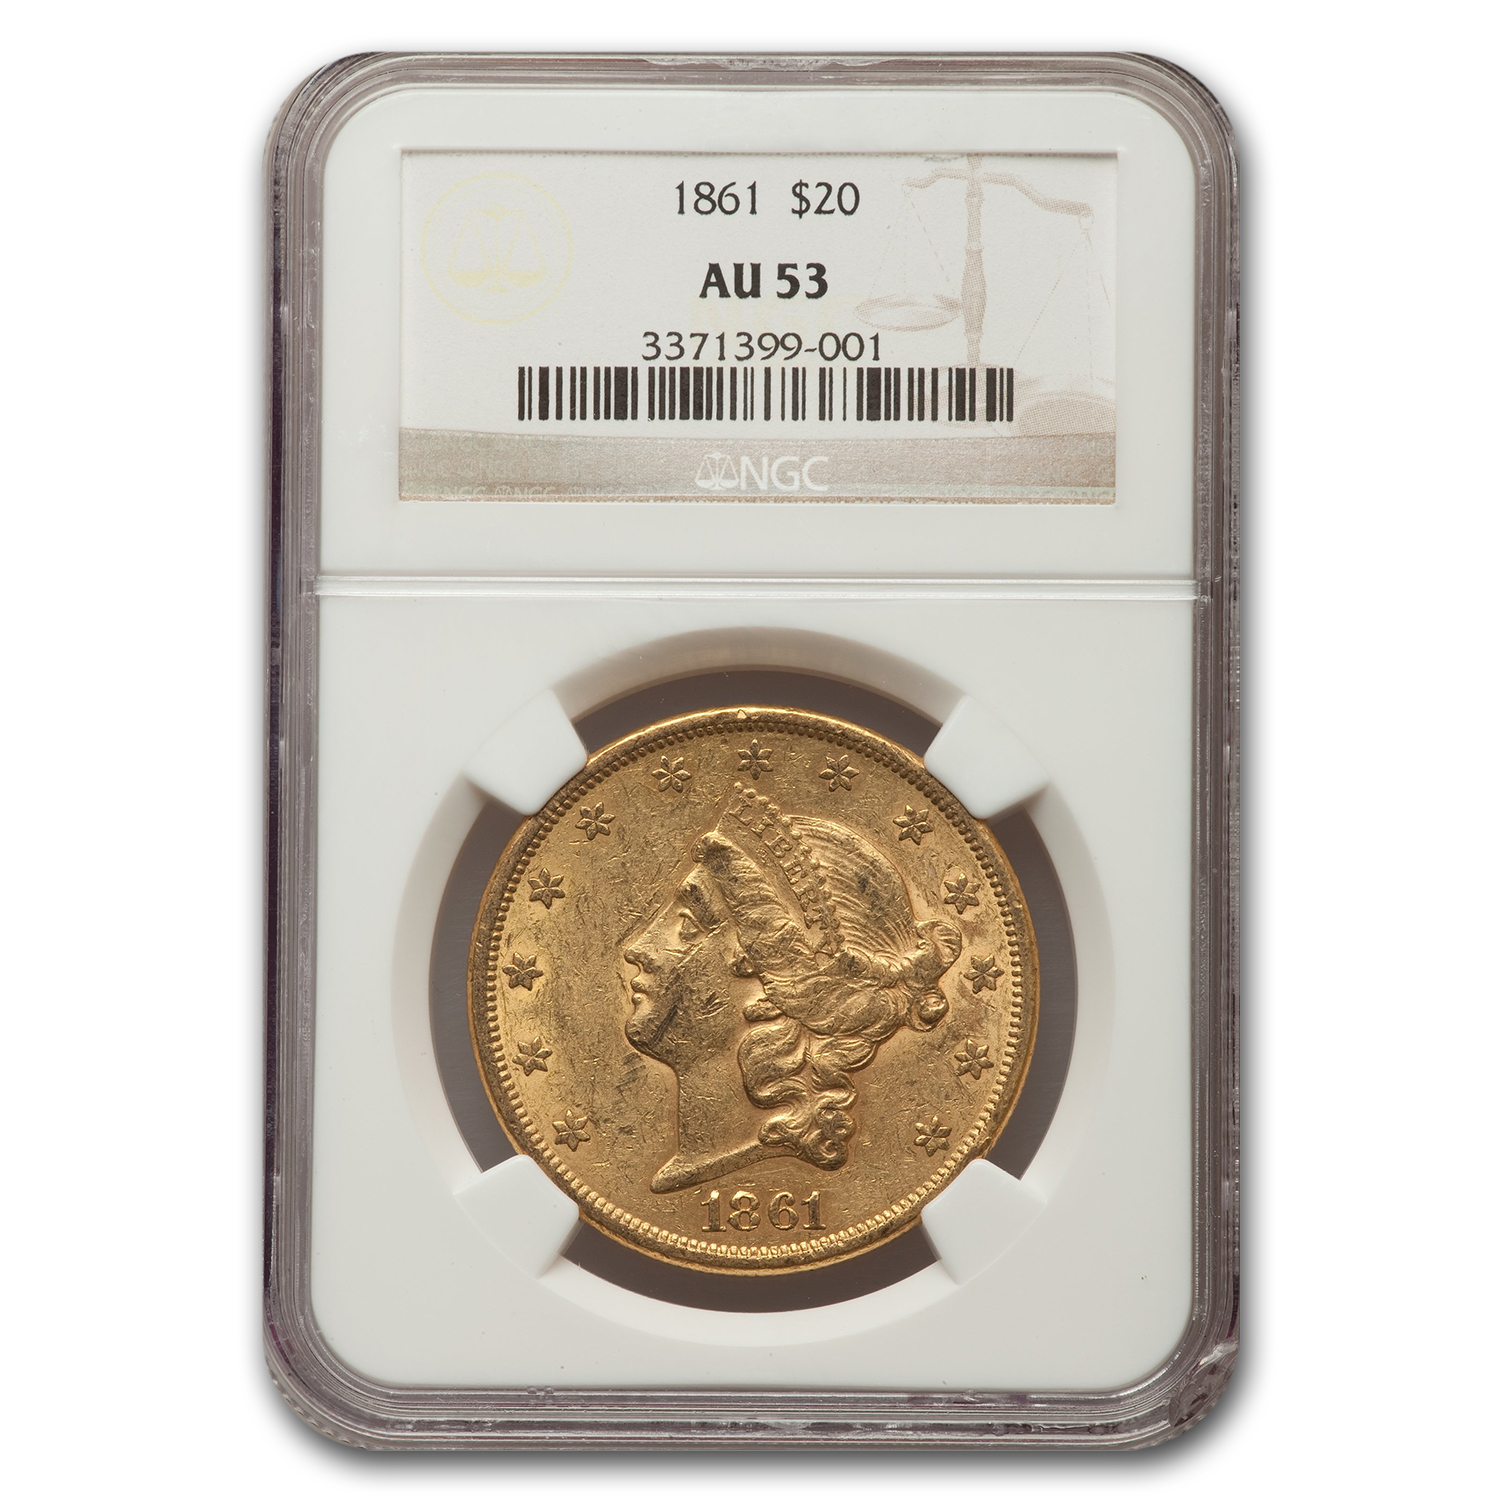 1861 $20 Liberty Gold Double Eagle Almost Unc - 53 NGC